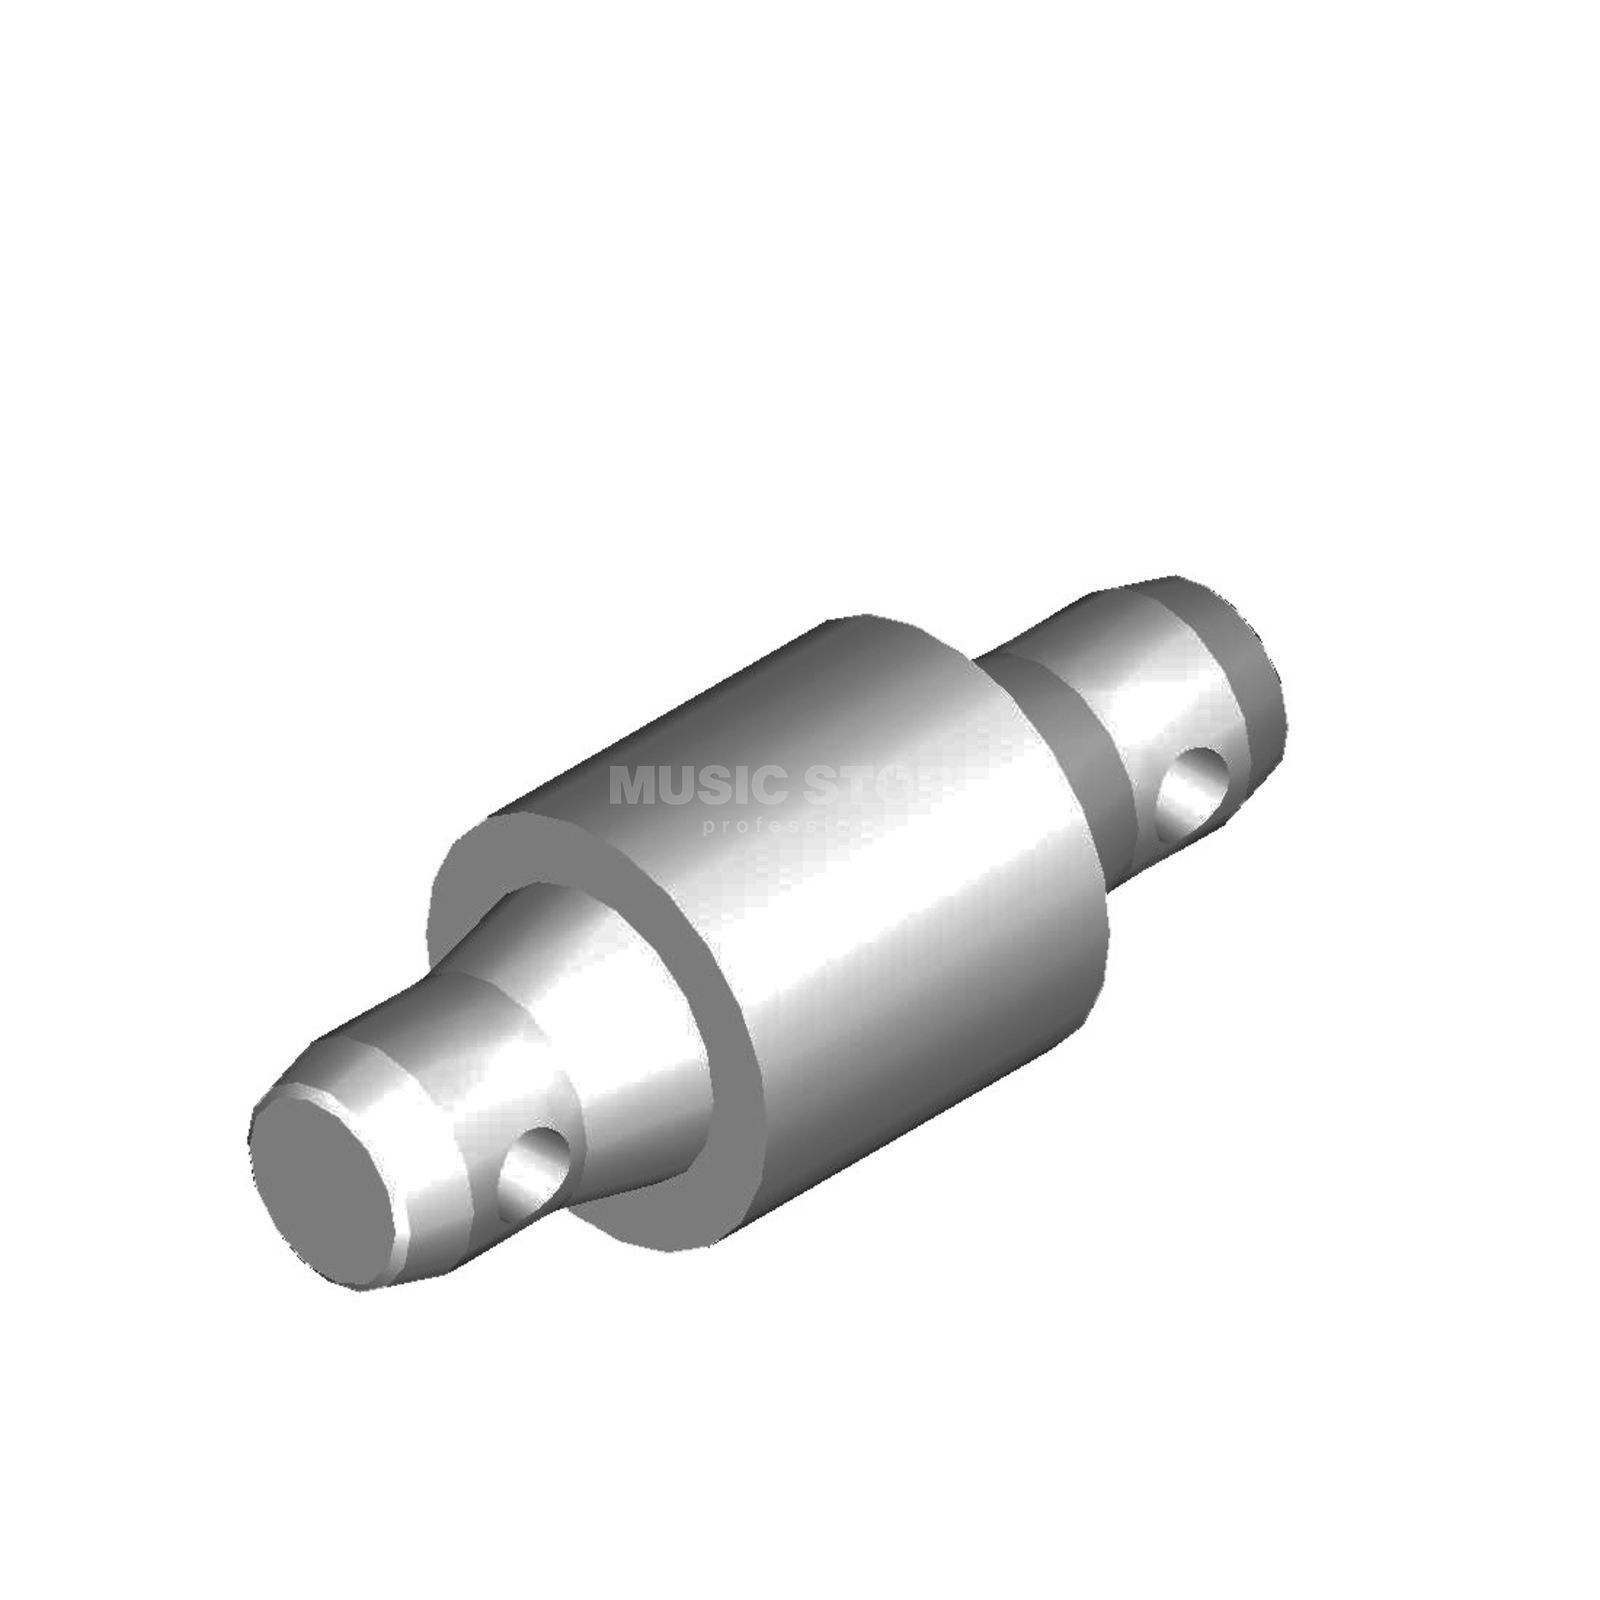 DURATRUSS Spacer 50 mm for System DT 32-33-34 Produktbillede